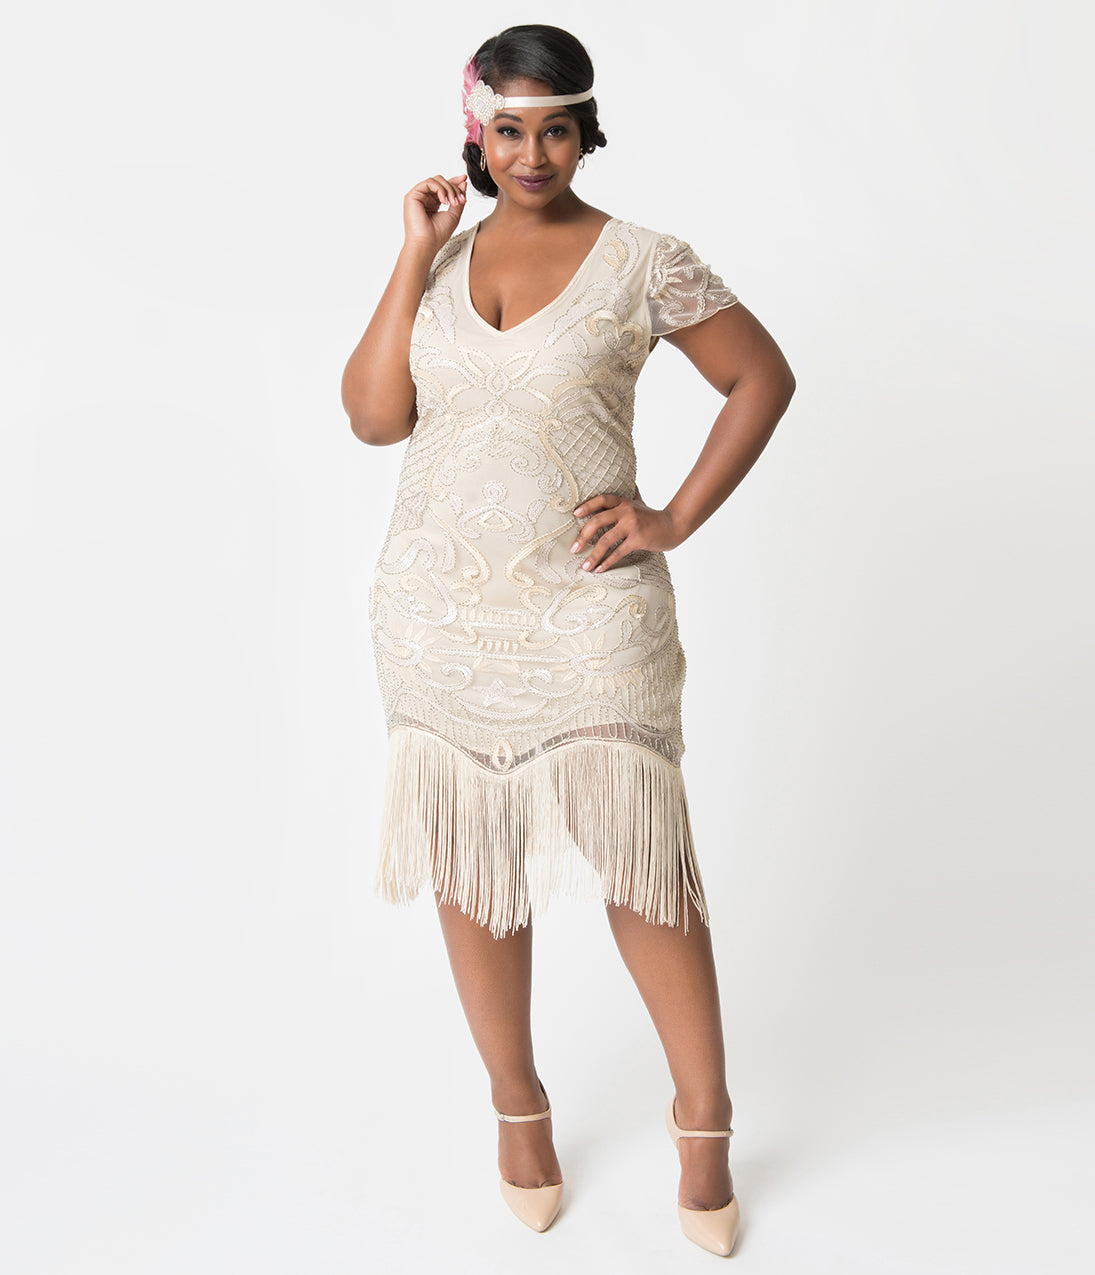 1920s Style Dresses, Flapper Dresses Unique Vintage Plus Size 1920S Style Champagne Beaded Fringe Aurore Flapper Dress $98.00 AT vintagedancer.com